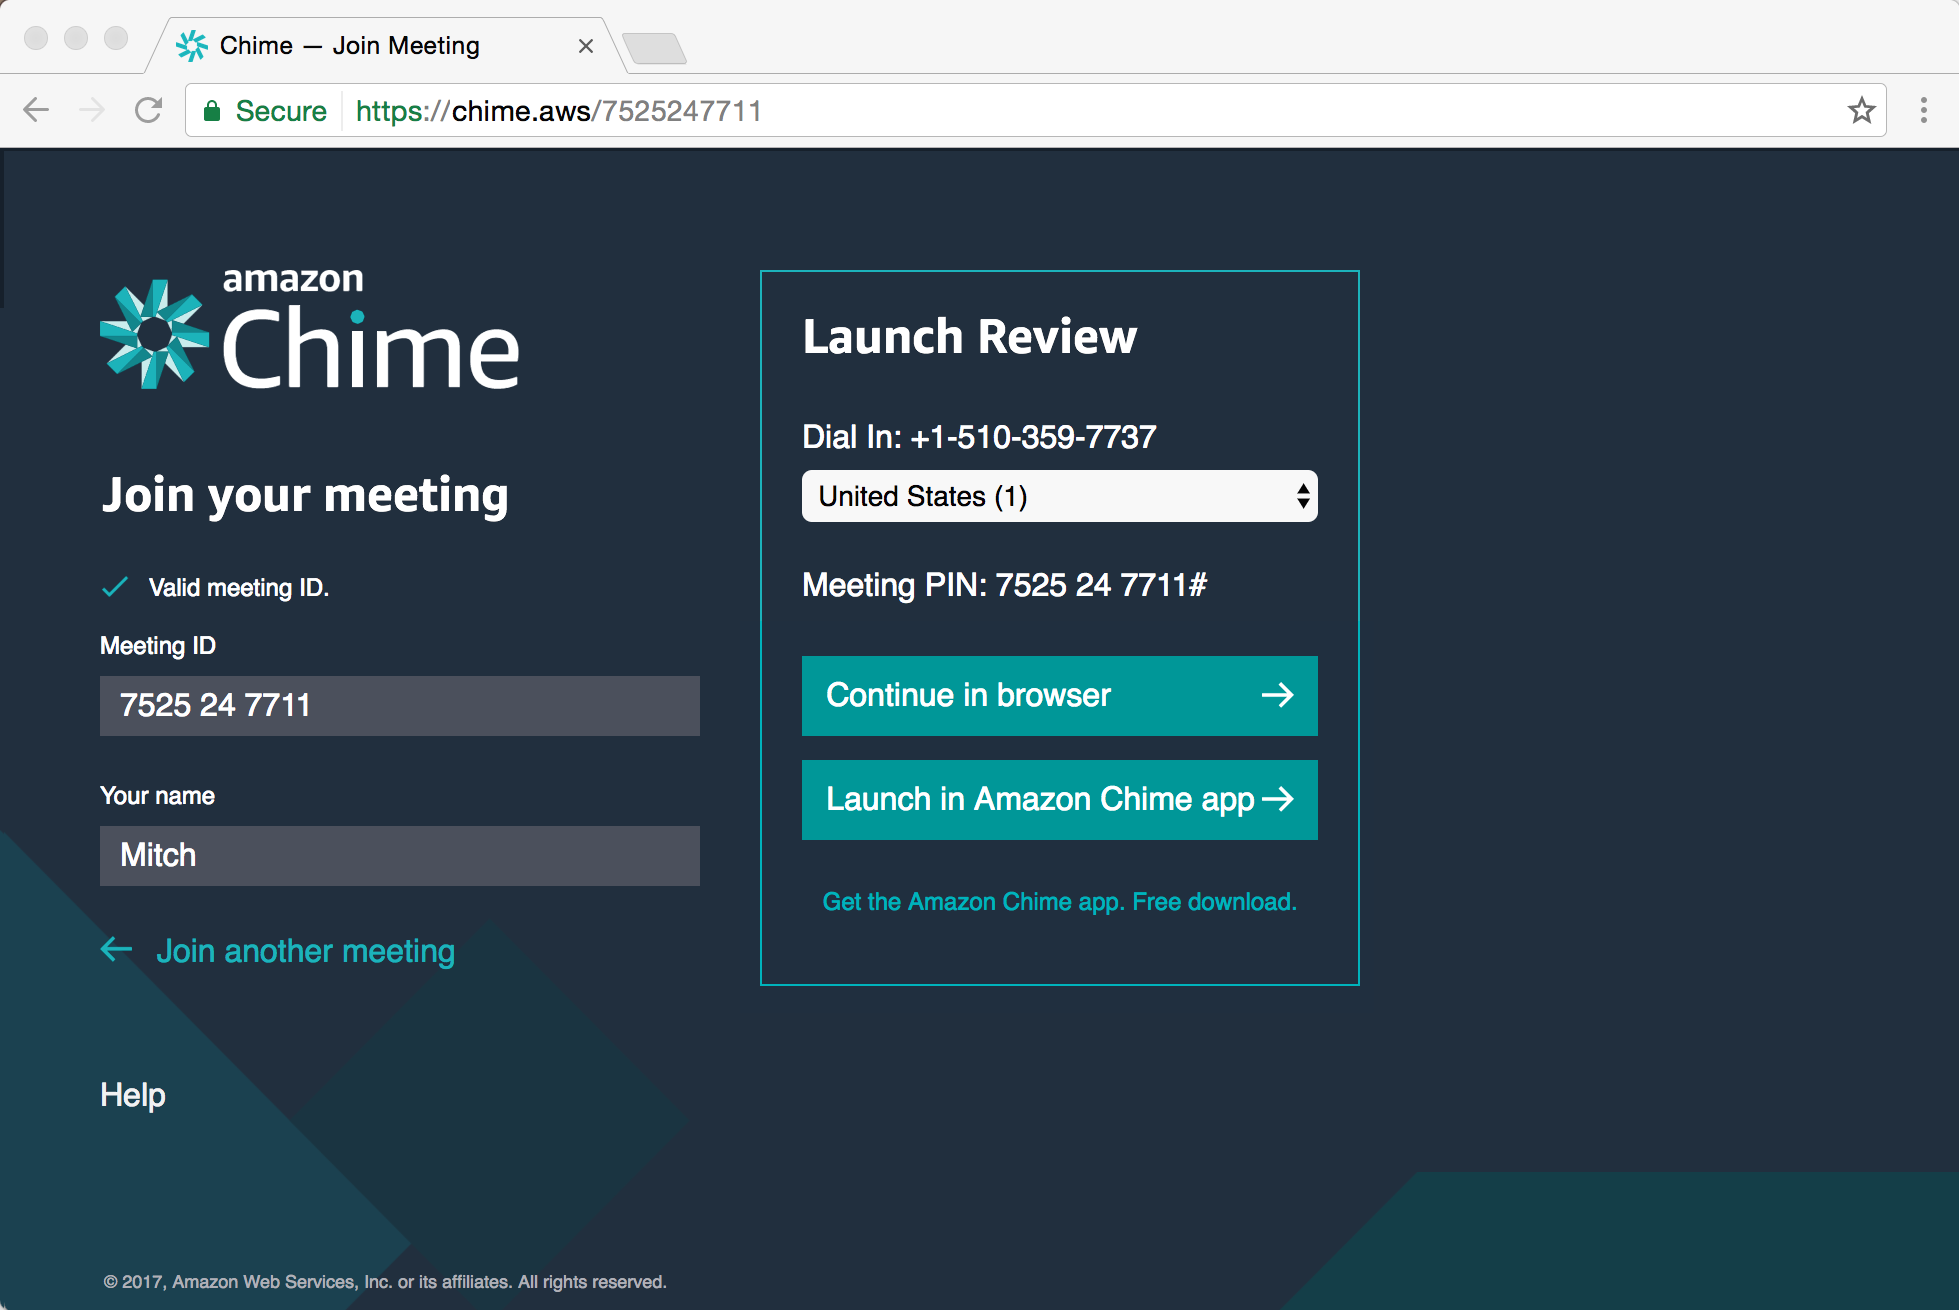 Amazon Chime screenshot: Users can join meetings through the Amazon Chime apps for iOS, Android, Mac OSX and Windows, or dial-in and join the meeting room through their web browser